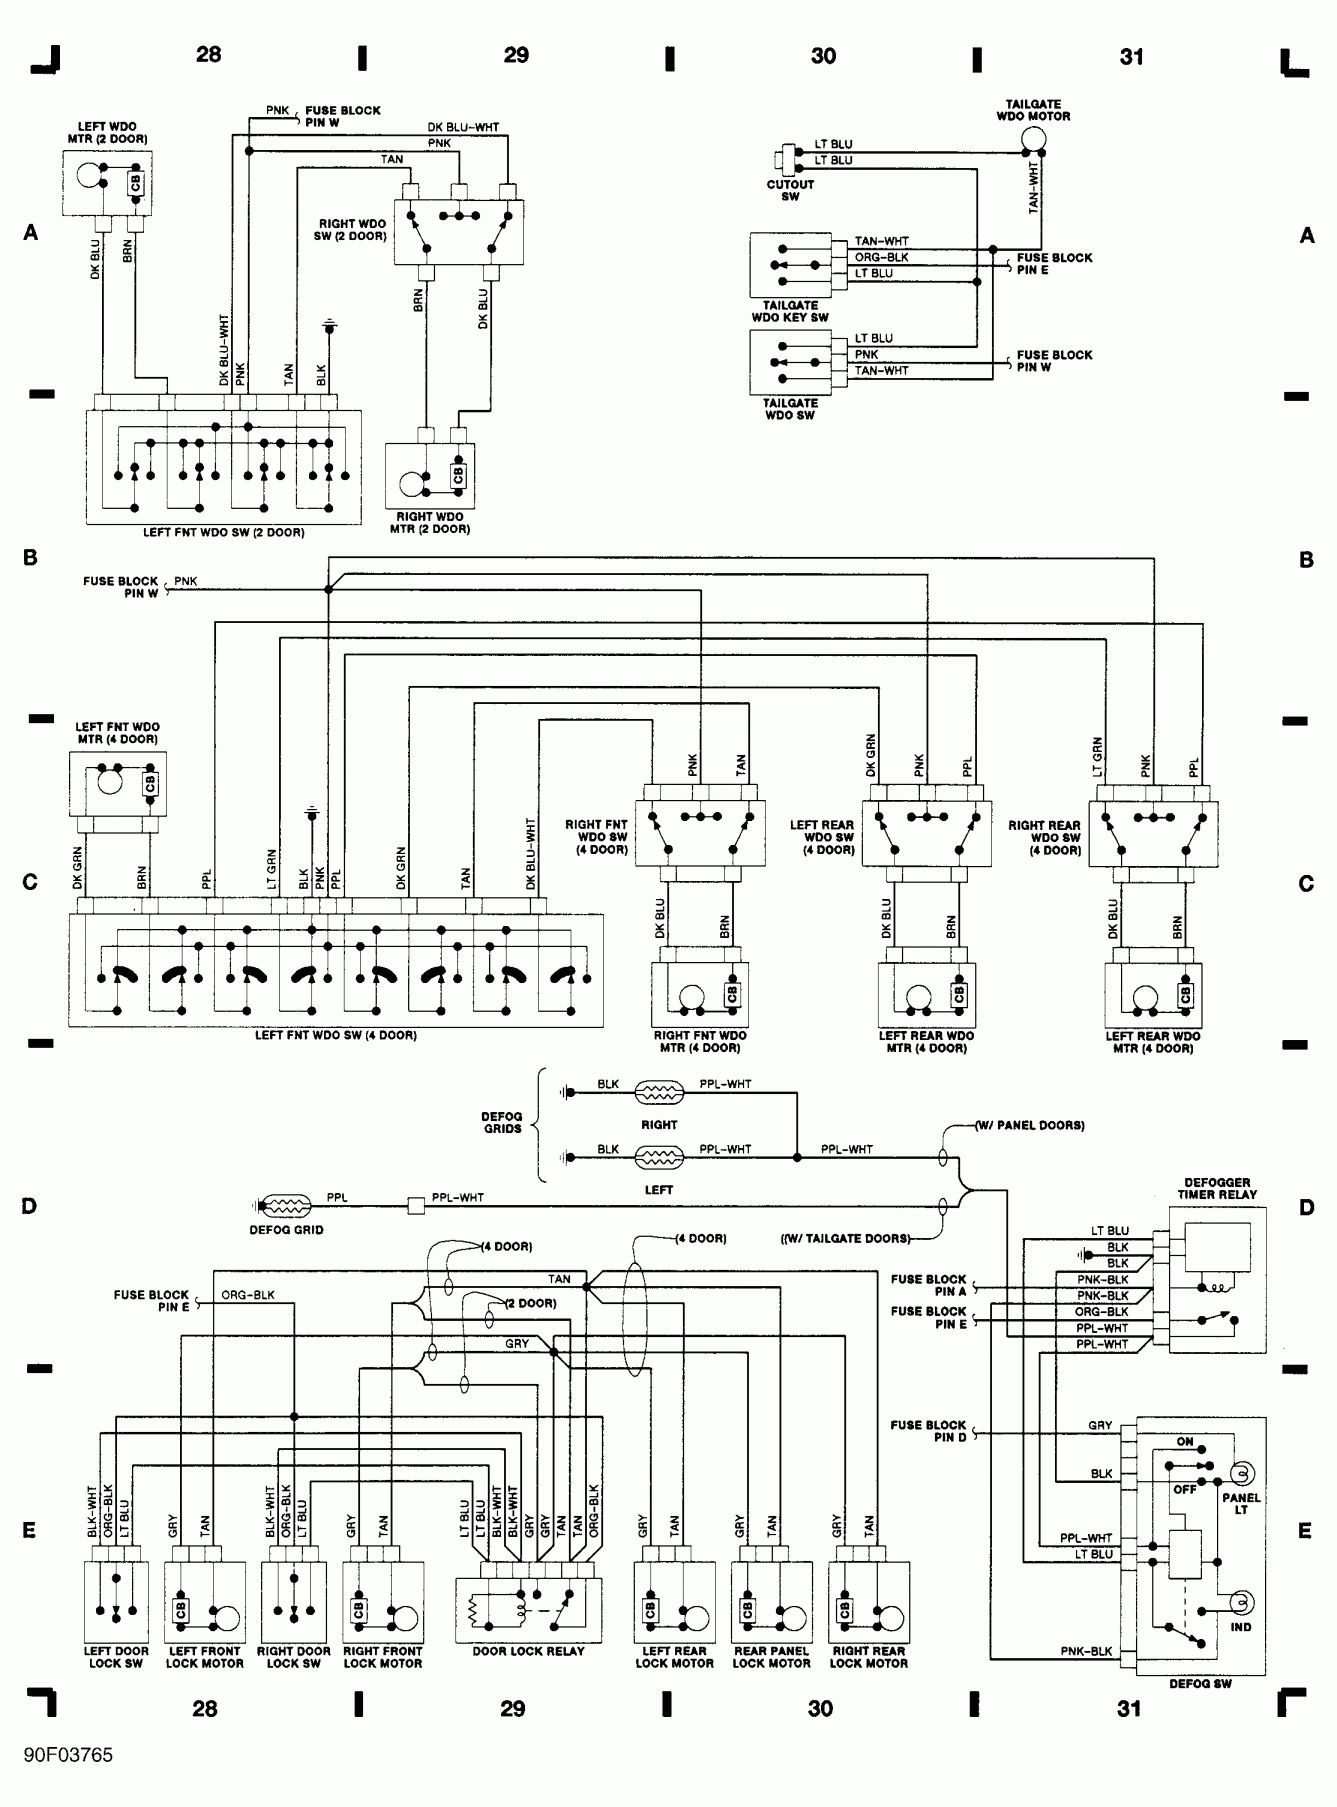 98 Lincoln Town Car Wiring Diagram and Wrg-] Wiring Diagram Lincoln Town Car  in 2020 | Lincoln town car, Automotive electrical, DiagramPinterest